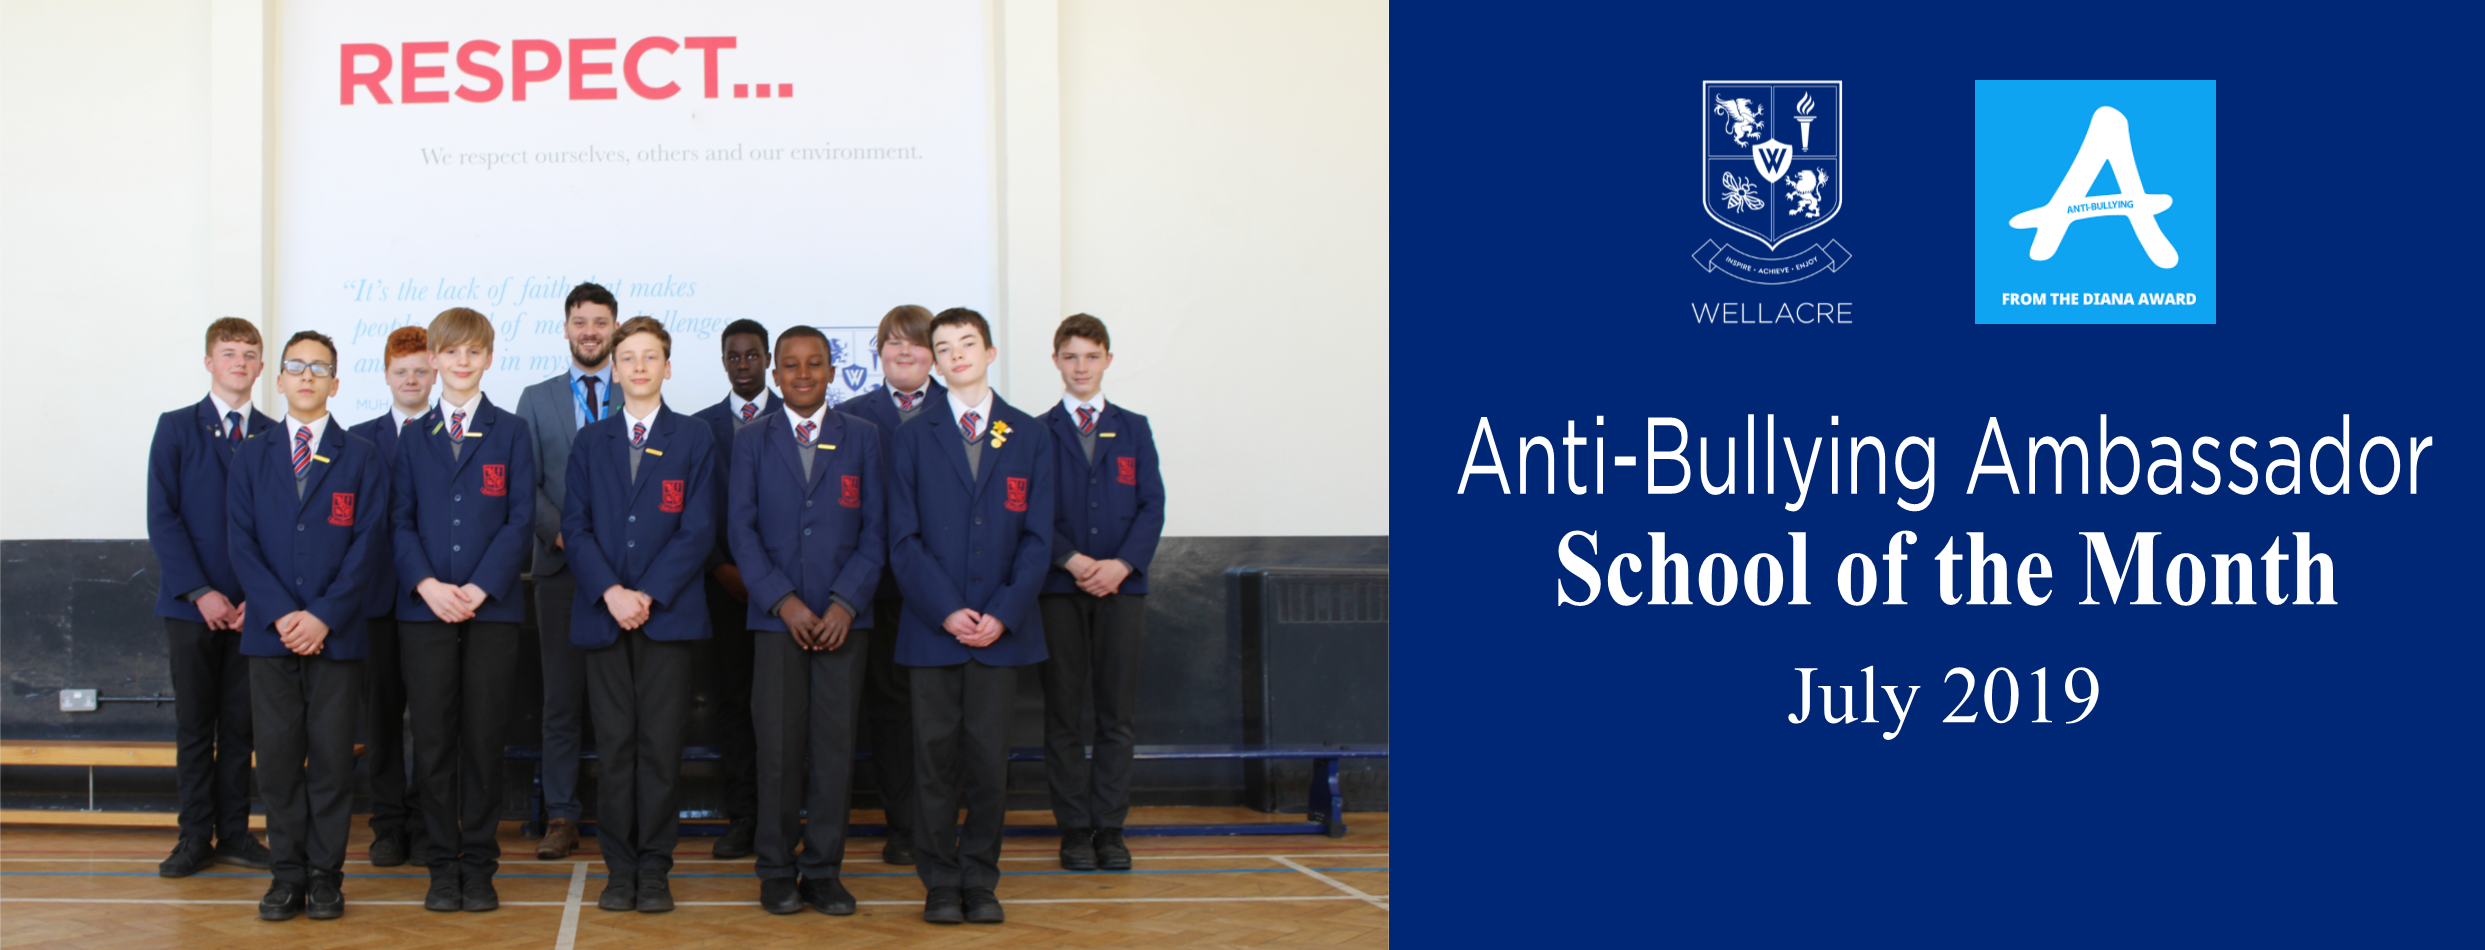 Anti-Bullying Ambassador School of the Month 2019.png